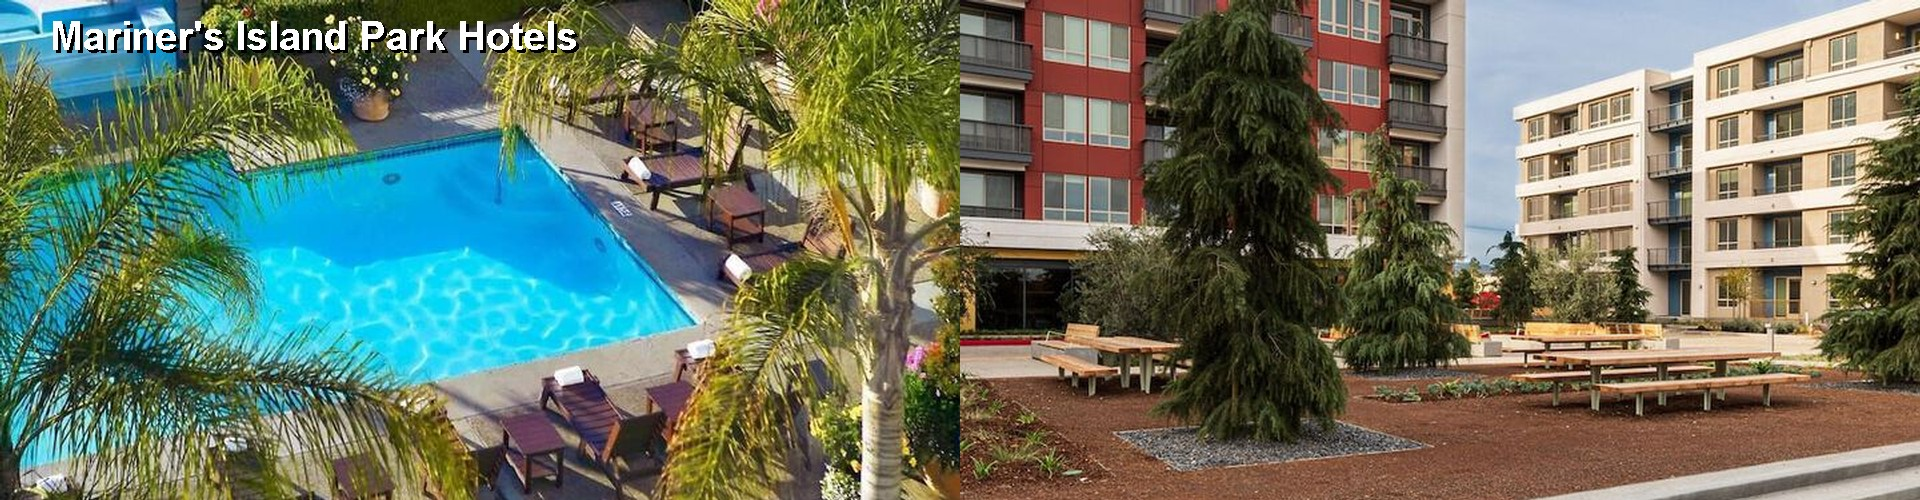 5 Best Hotels near Mariner's Island Park